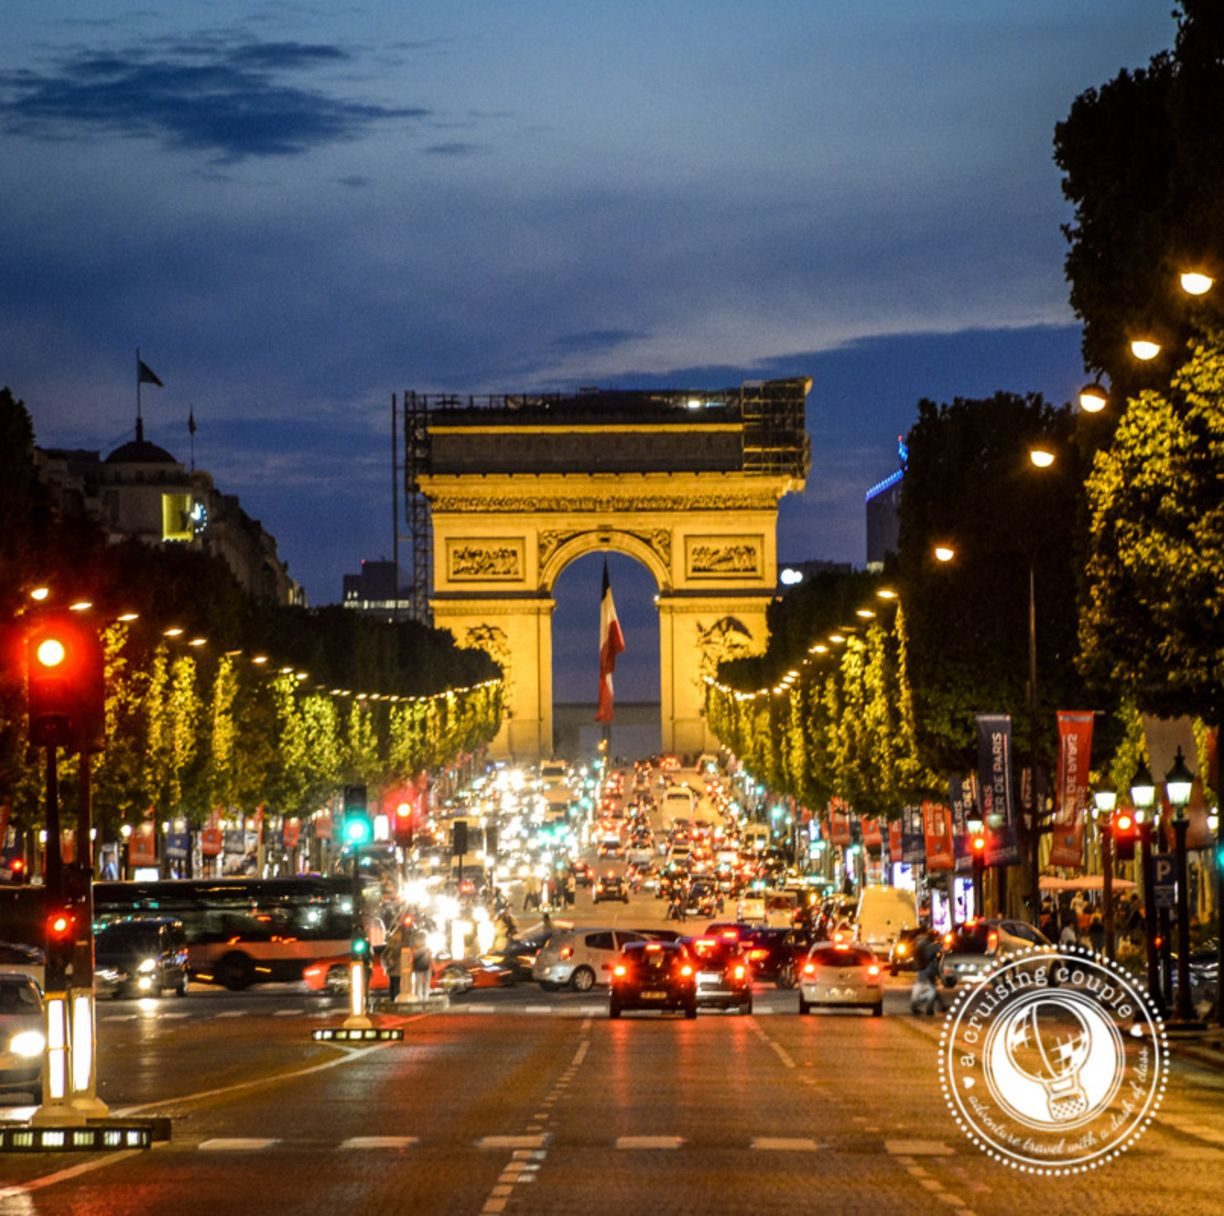 Arc de Triomphe, Paris, France - Ah Paris at midnight. Still as lively as ever. If you want a great view of the Arc, the Tower and surrounding city head up to the top floor of the bar La Vue just up the road.